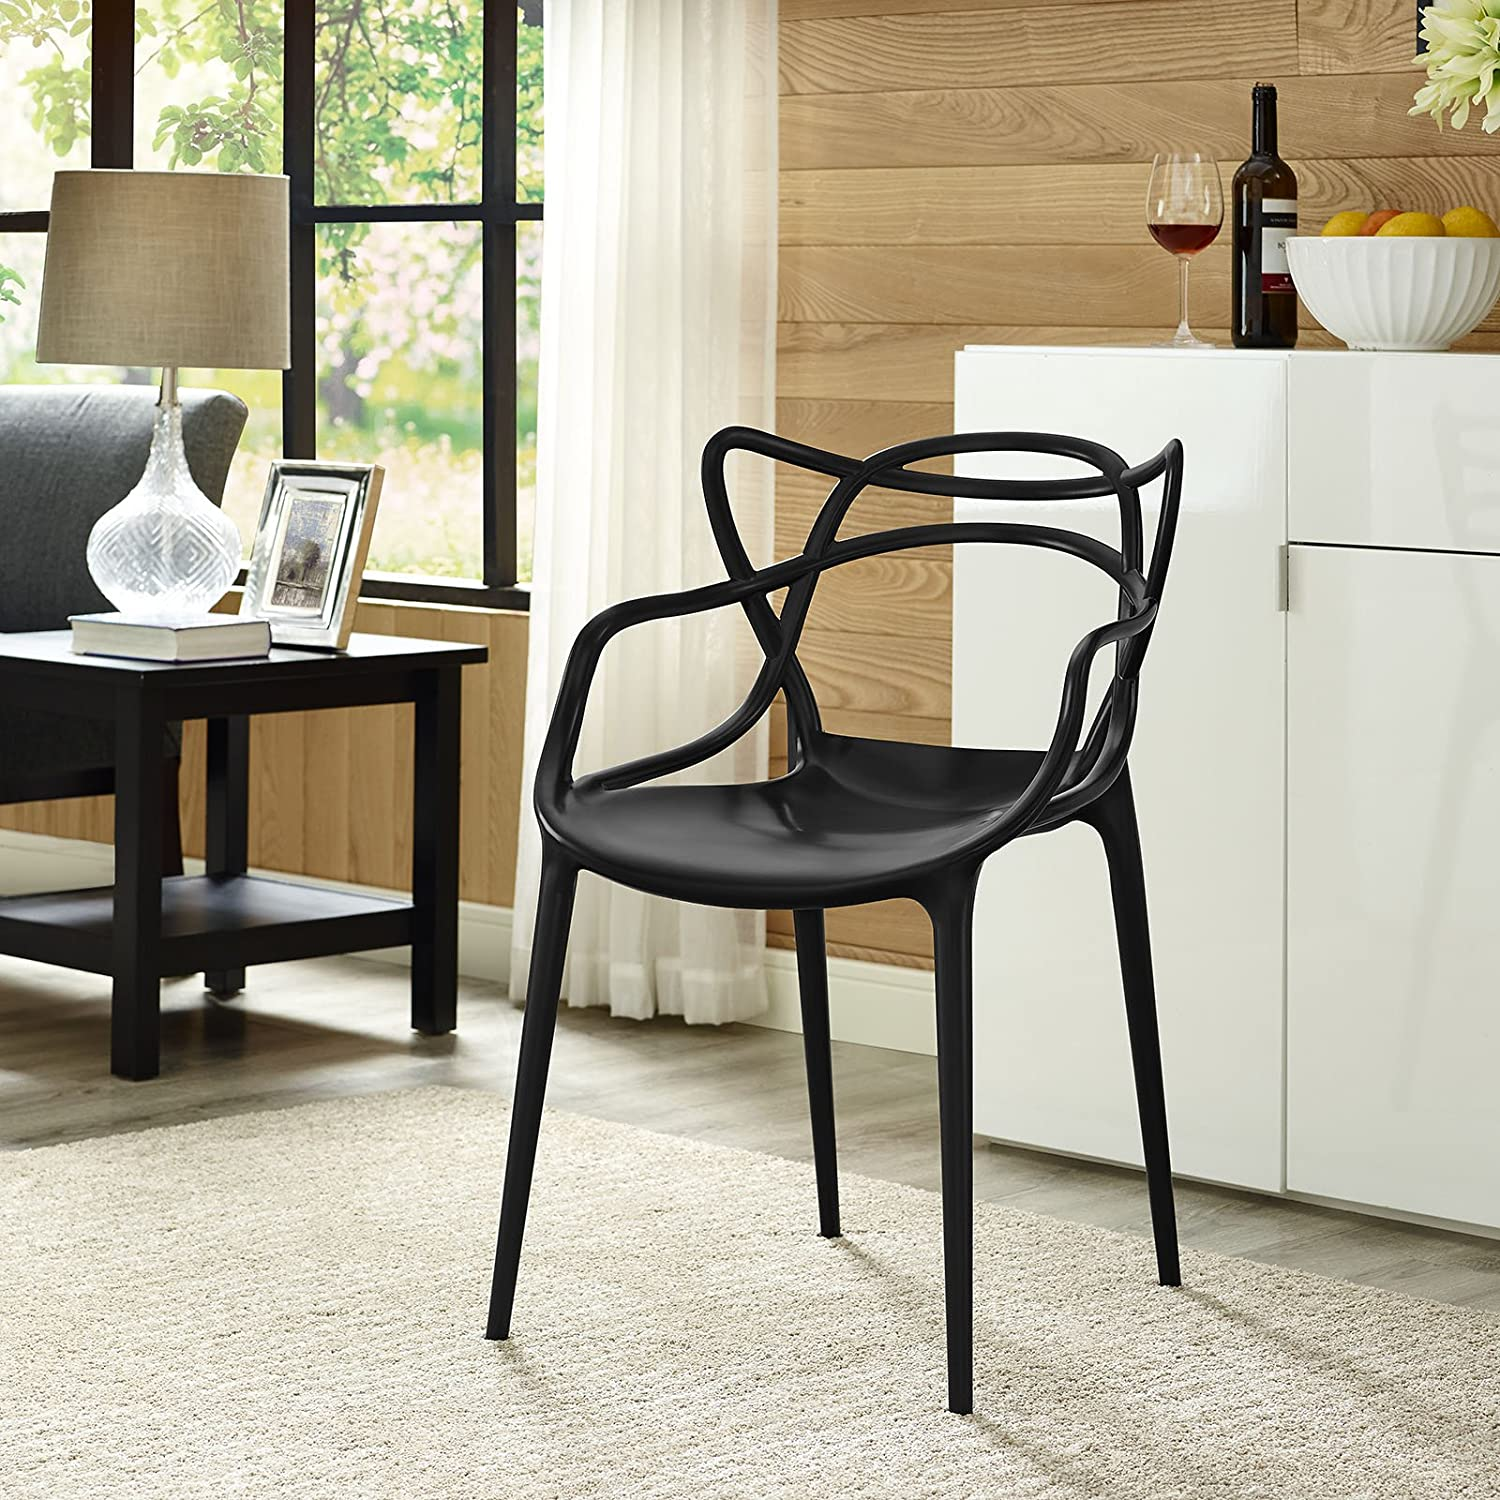 Modway Entangled Modern Molded Plastic Kitchen and Dining Room Arm Chair in Black - Fully Assembled